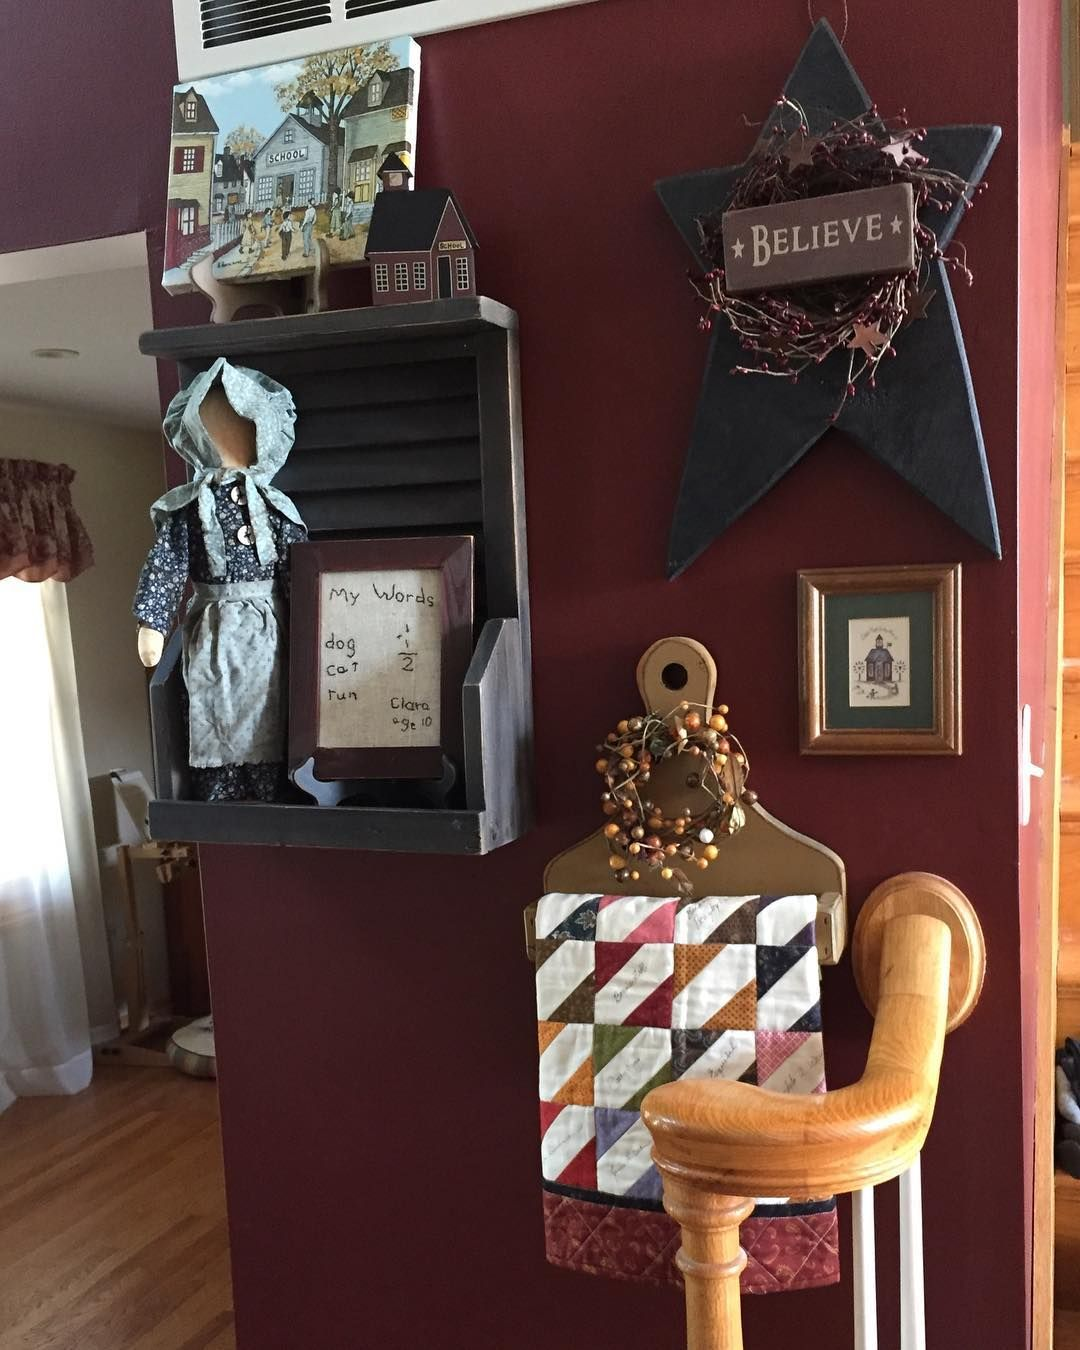 Pin By Michelle Schank On Home Decorating: Pin By Michelle On Decorating With Quilts